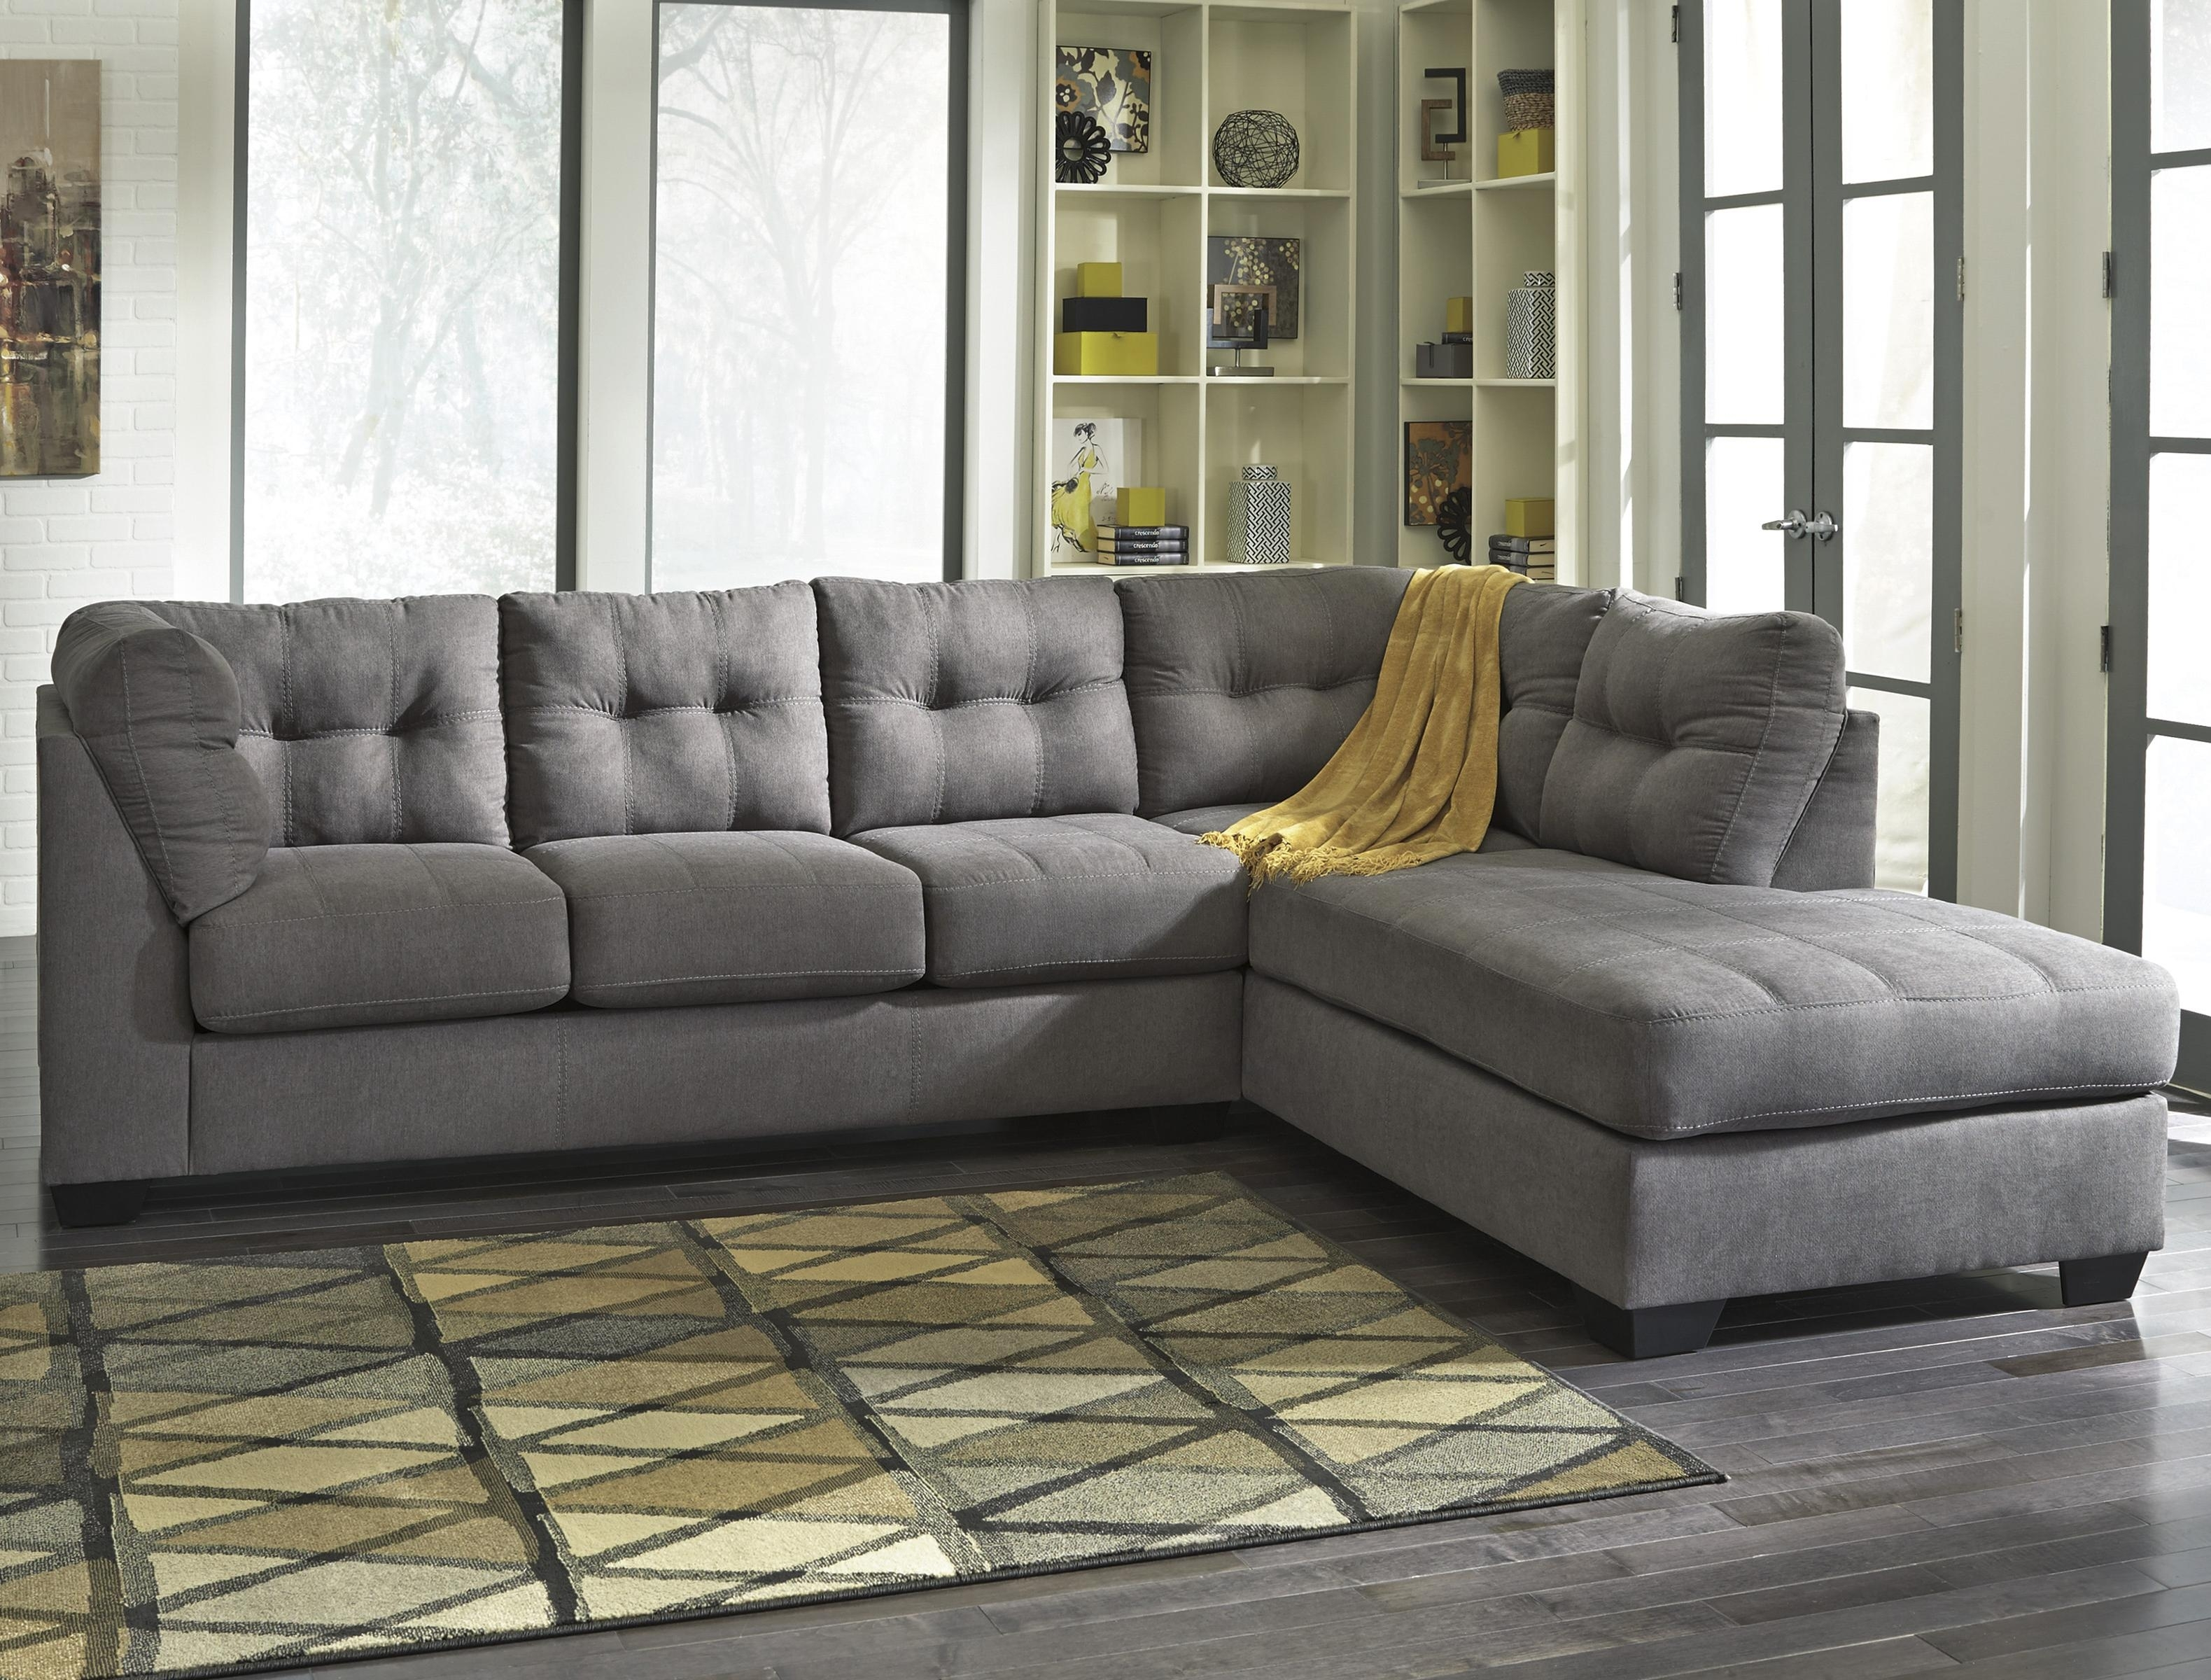 Benchcraft Maier – Charcoal 2 Piece Sectional W/ Sleeper Sofa Regarding Arrowmask 2 Piece Sectionals With Sleeper & Left Facing Chaise (Image 5 of 25)